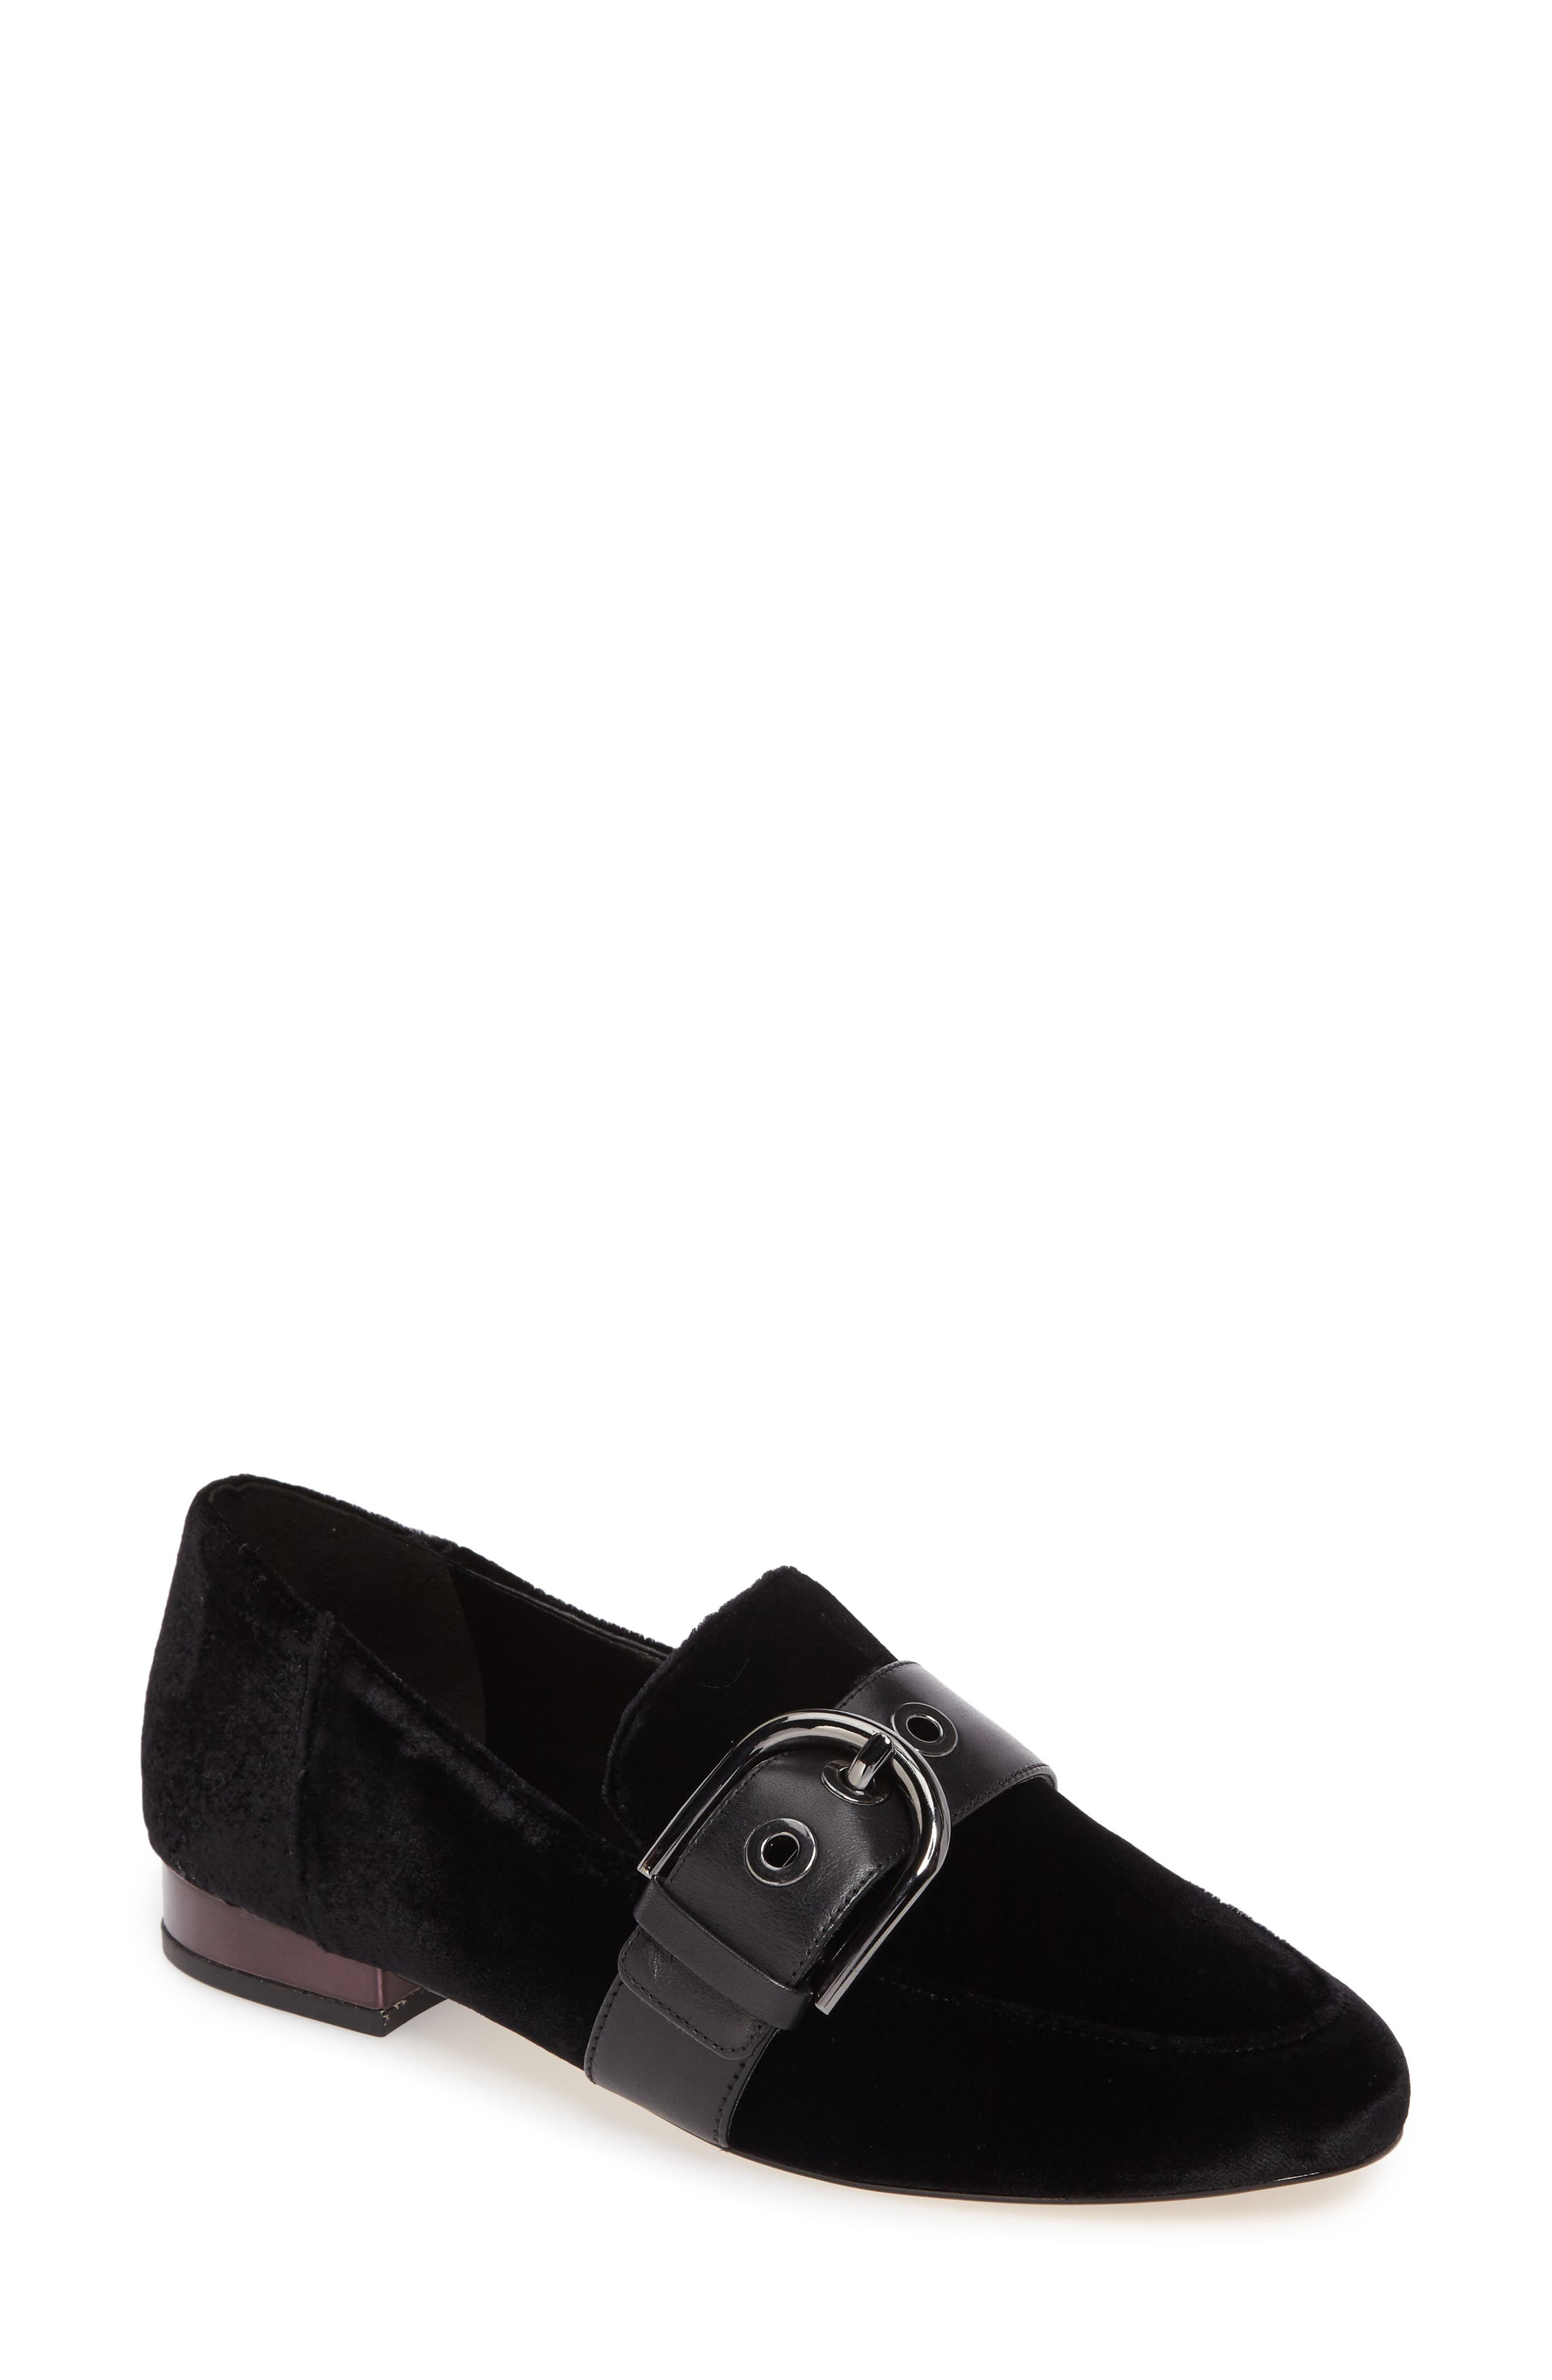 Cooper Loafer,                             Main thumbnail 1, color,                             001